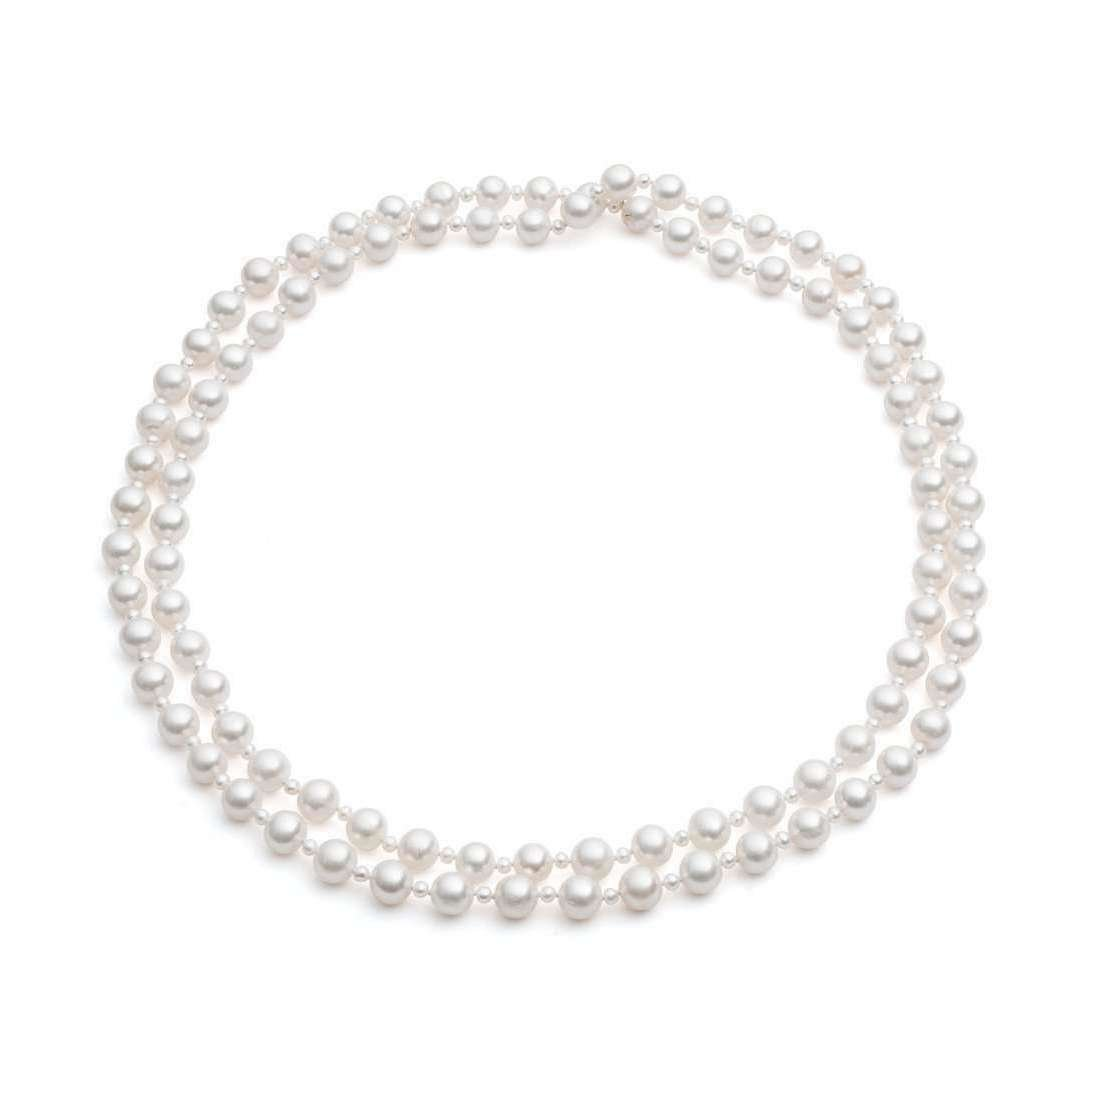 White Cultured Freshwater Pearl Rope Necklace - The Pearl Quarter